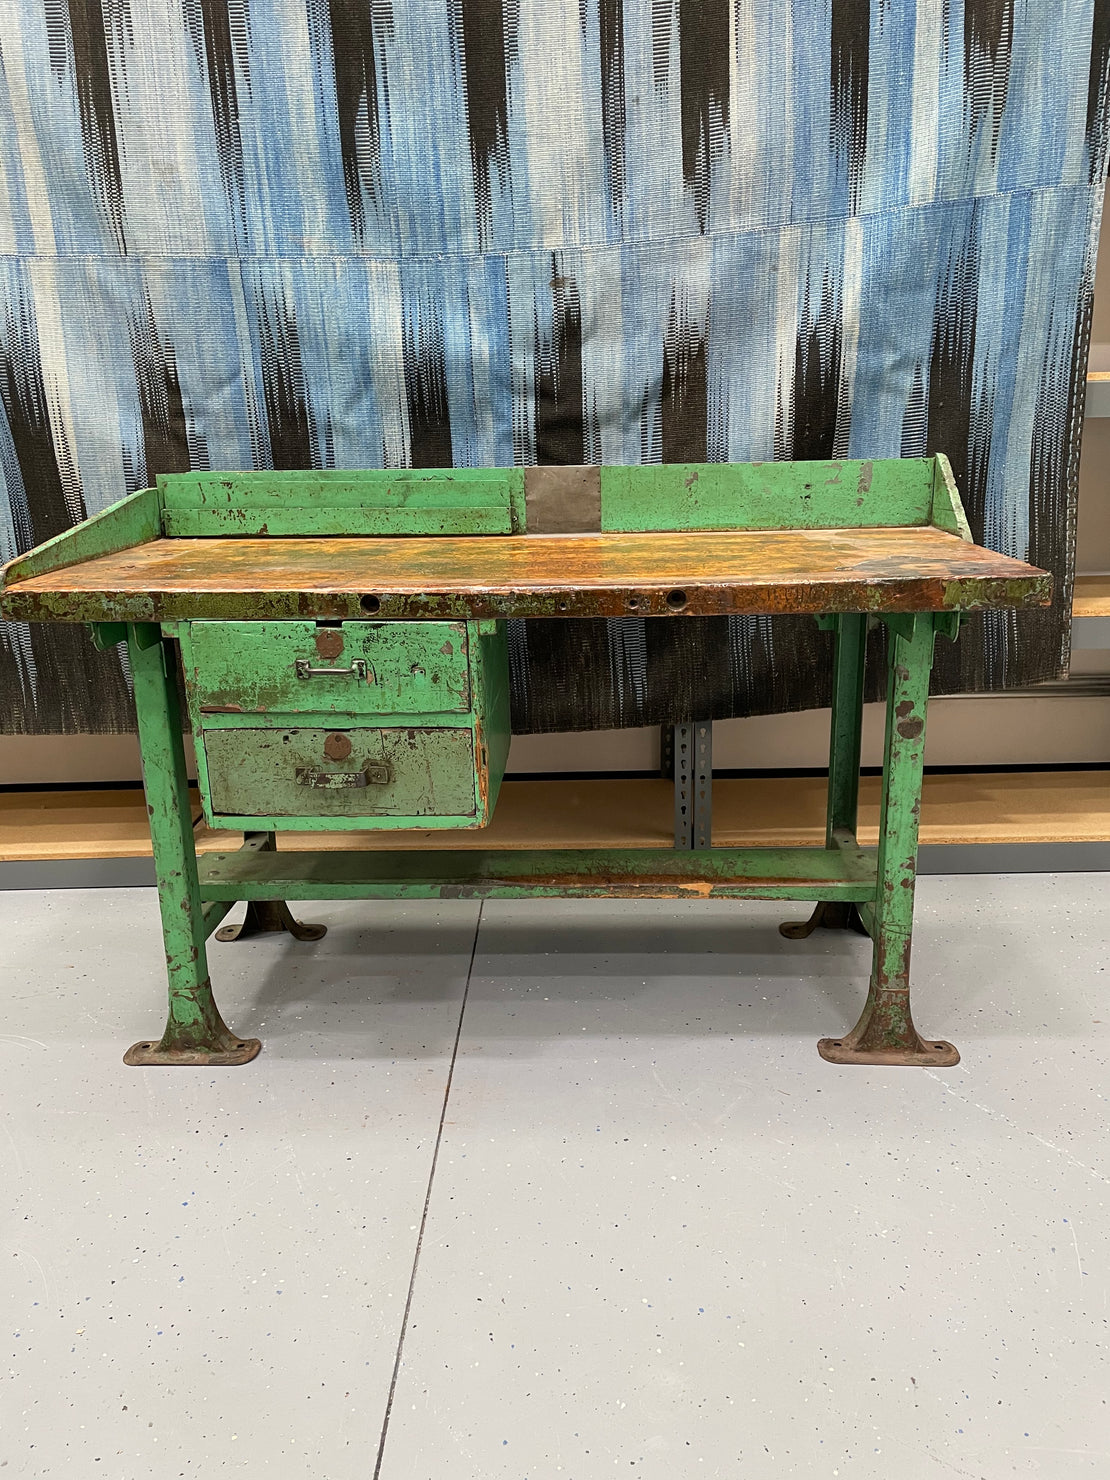 Warehouse Sale A14 - Green Wood Work Bench